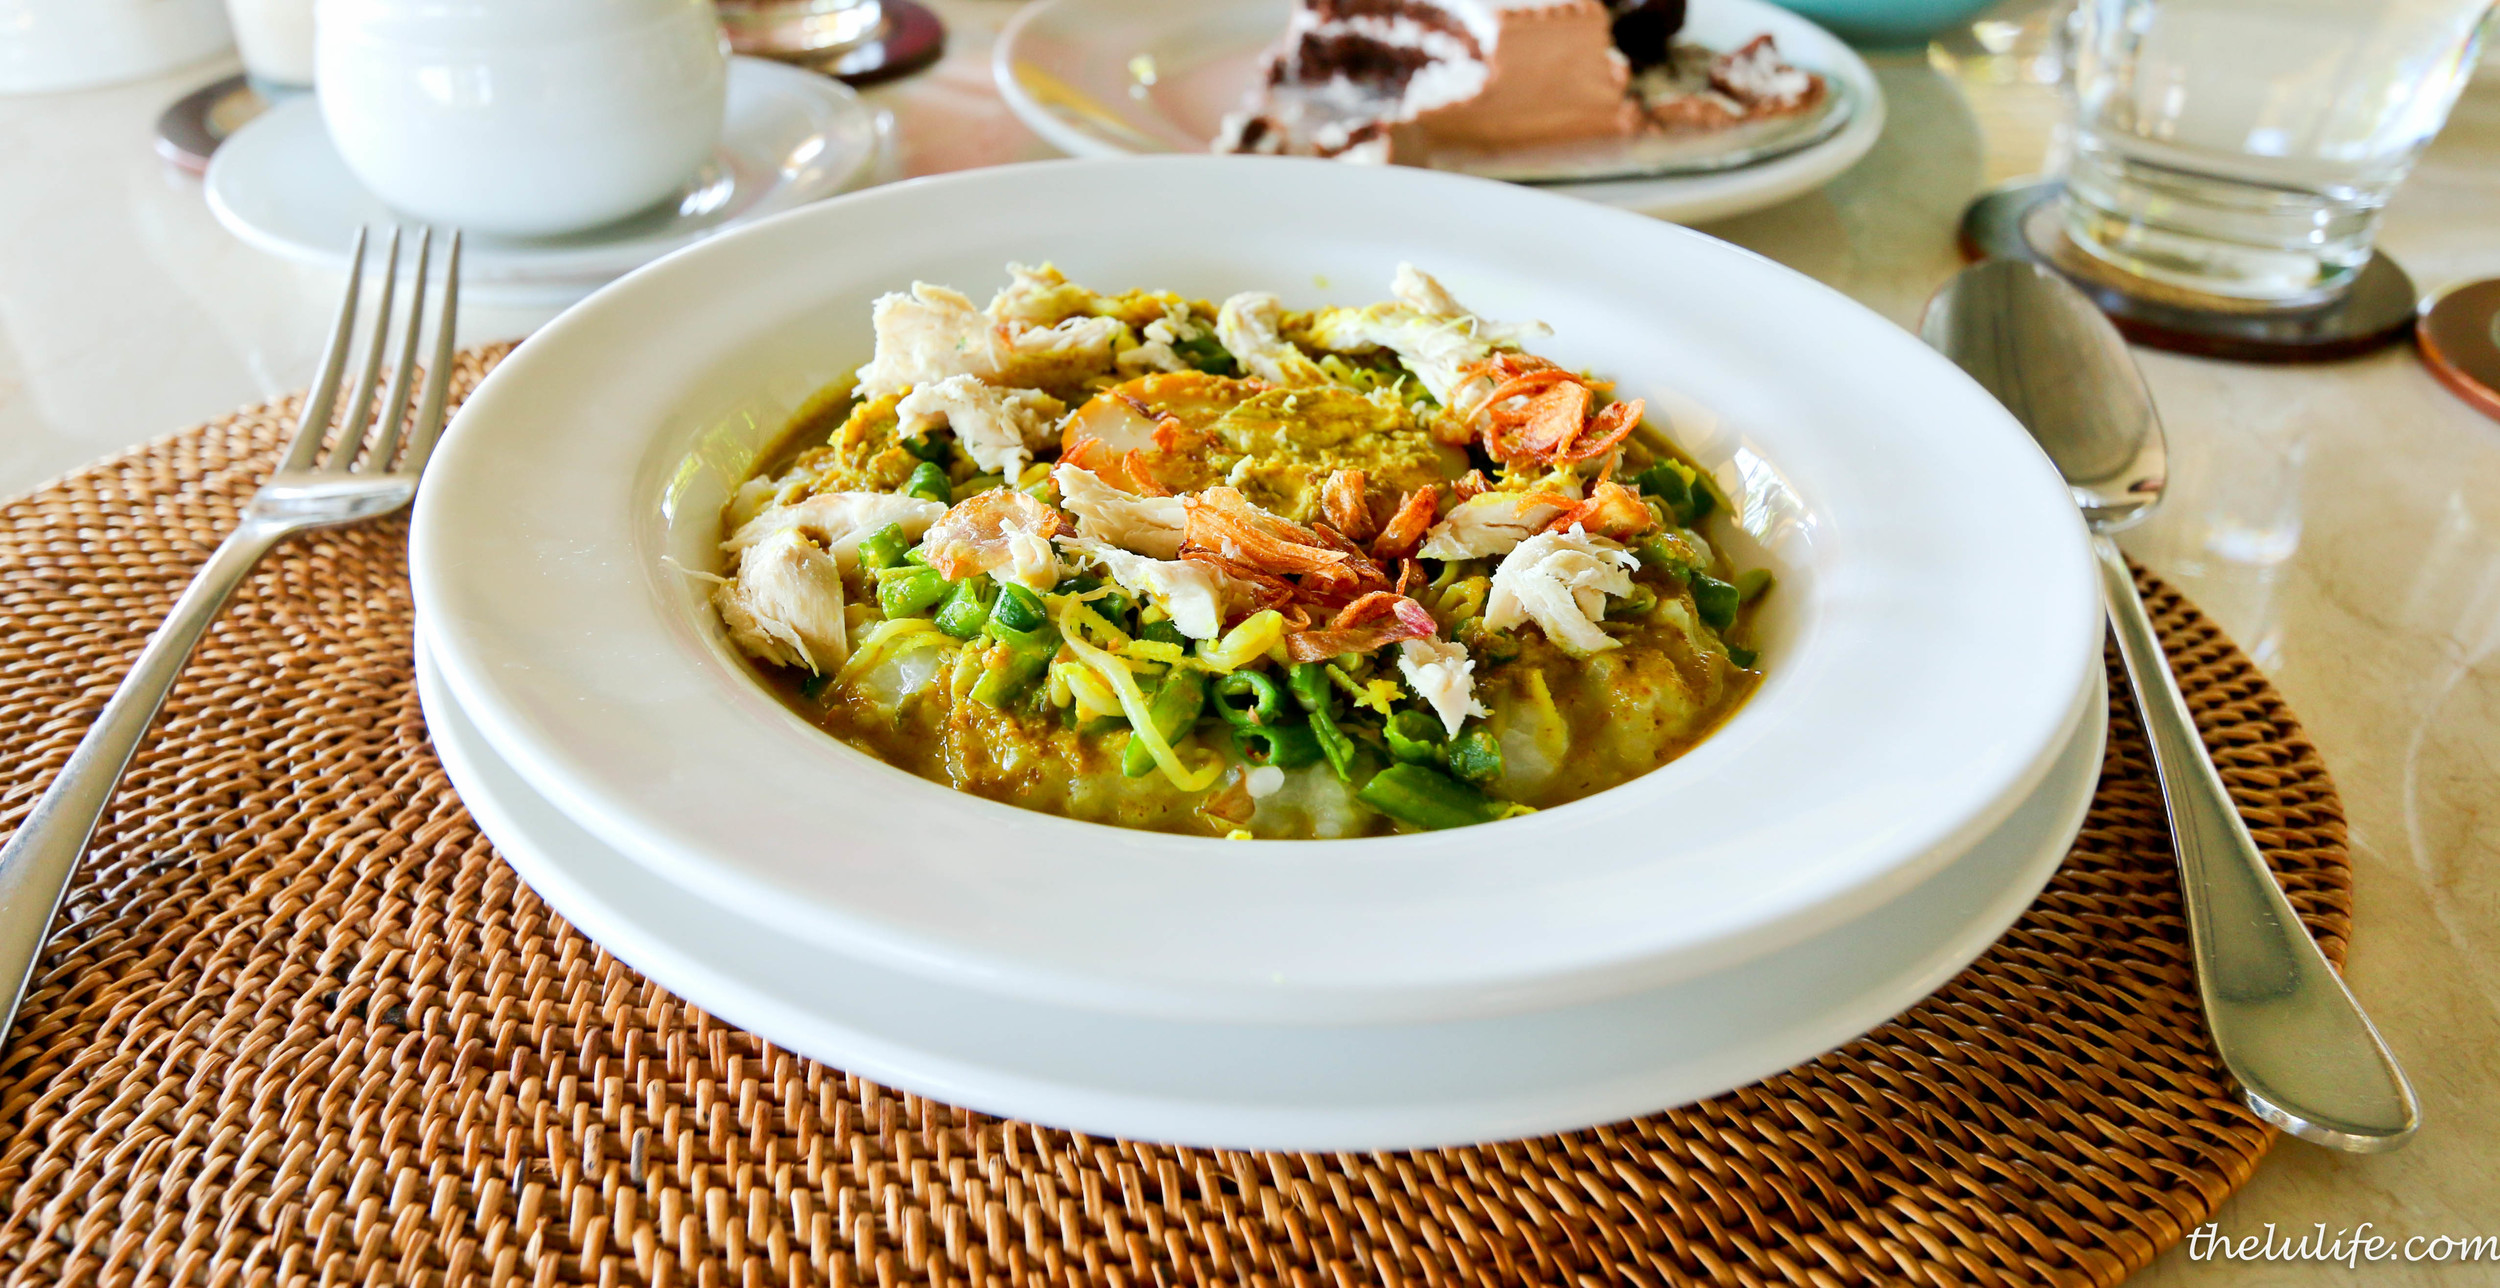 Bubur ayam - traditional Indonesian porridge with shredded boiled chicken, boiled egg, salted vegetable and green chili cutting in light soy sauce